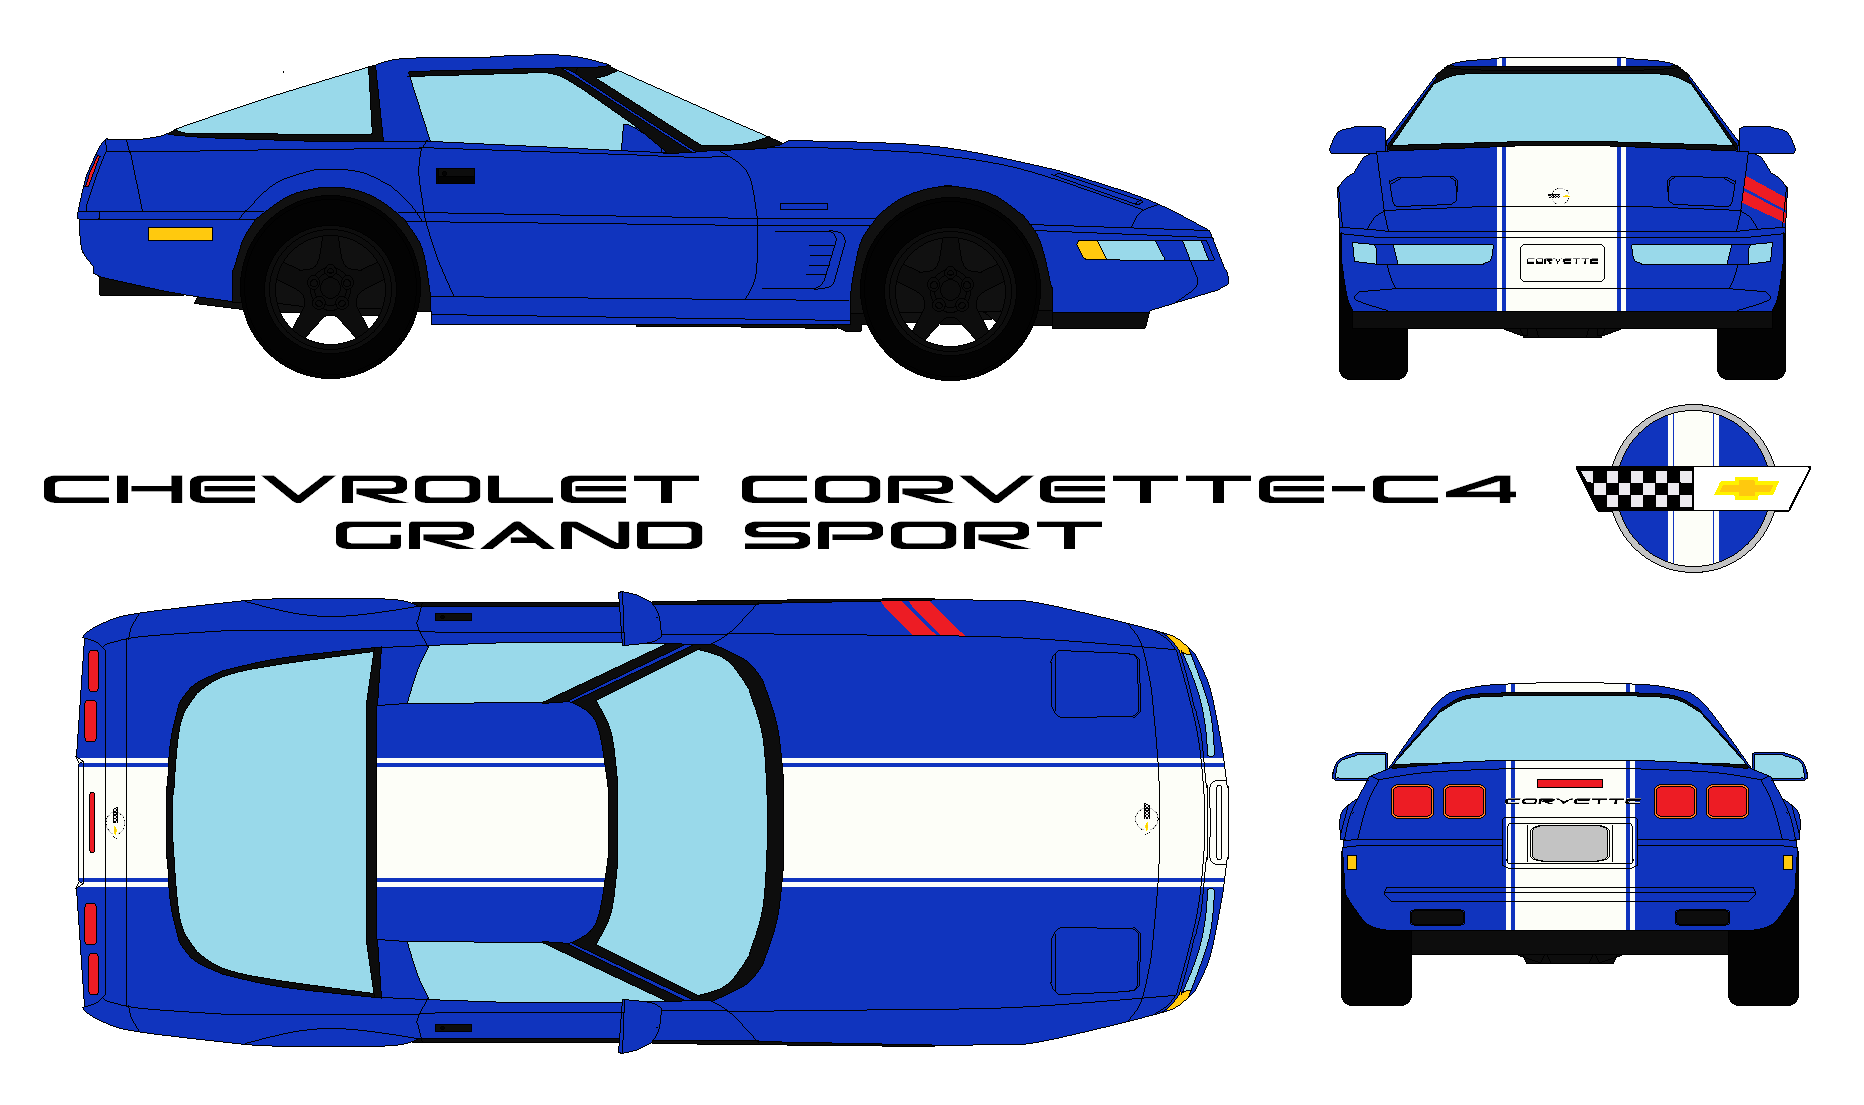 Chevrolet Corvette C4 Grand Sport By Bagera3005 On Deviantart